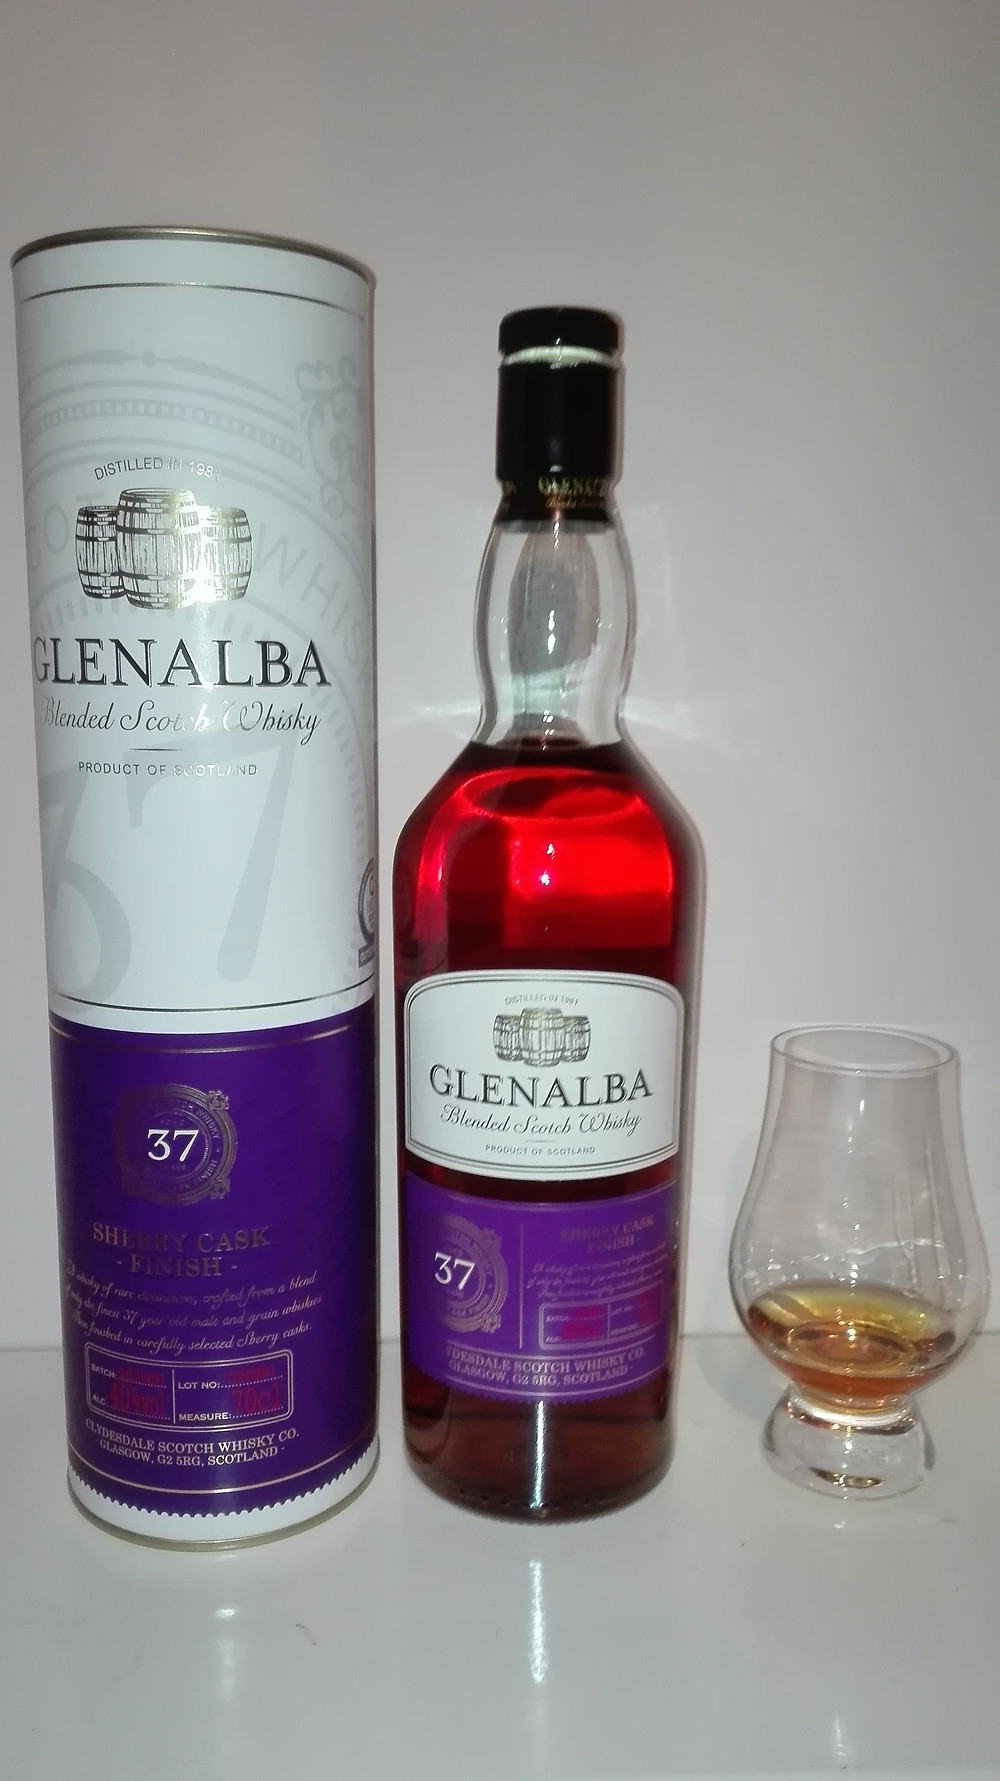 Glenalba 37, Lidl Whisky, Blen Lidl Blend, Tasting, Test, Notes